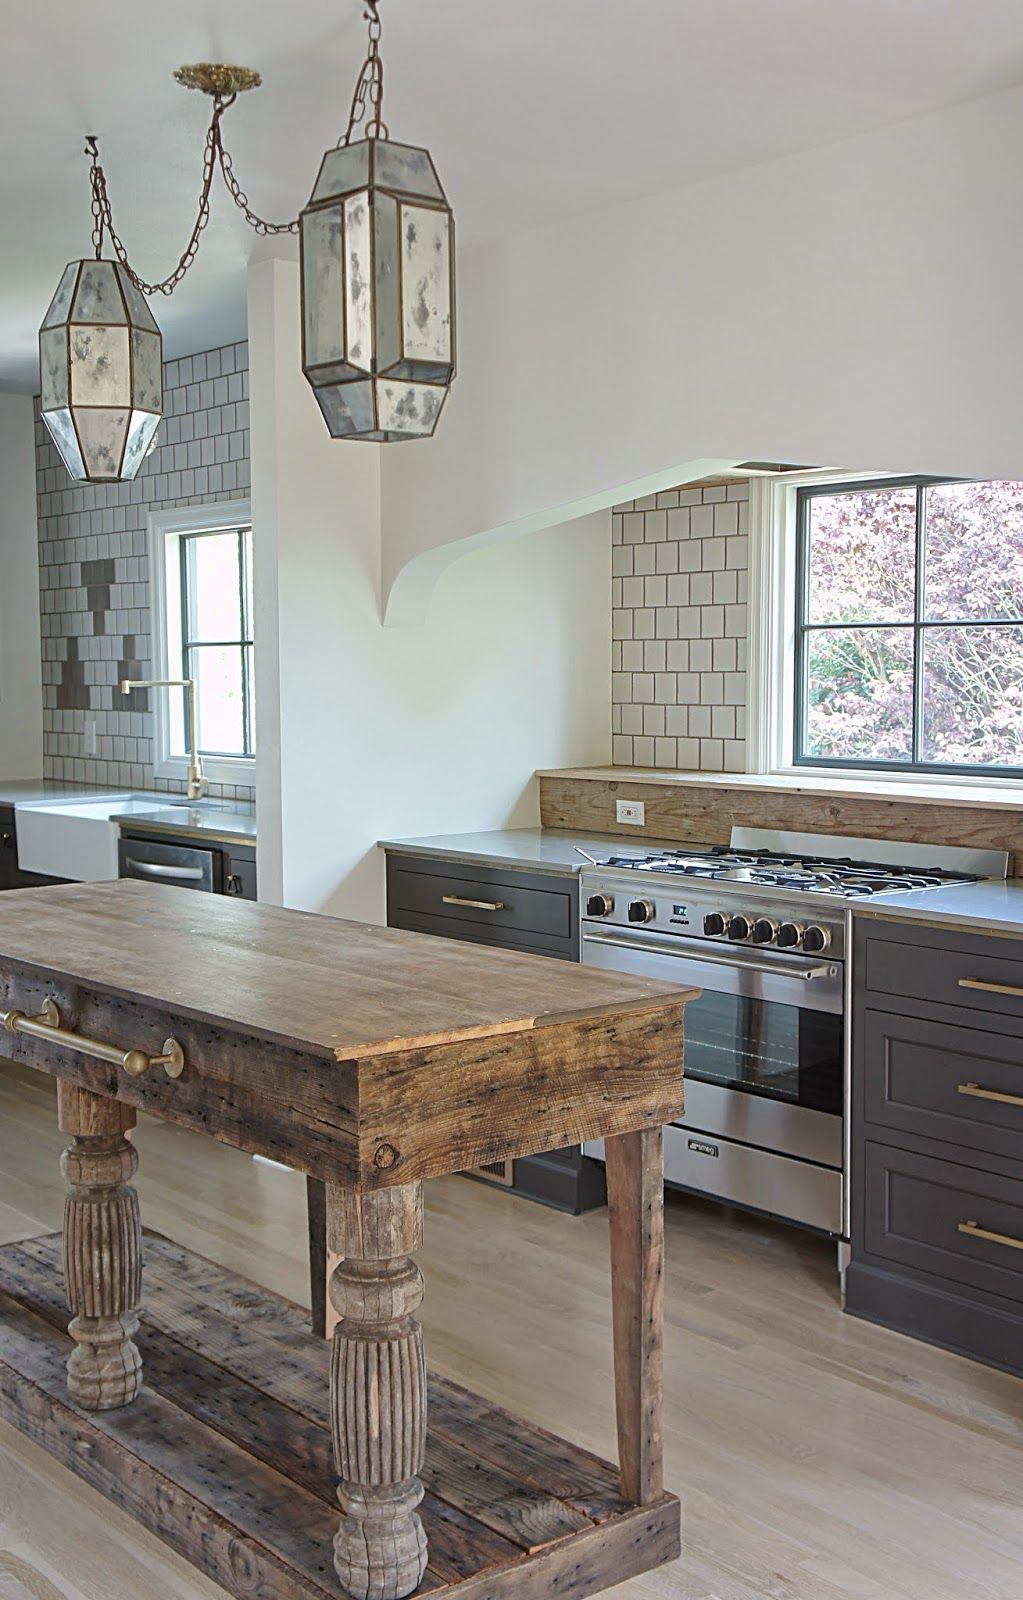 Kitchen Island Uses A Mix Of Repurposed Table Legs And Planks